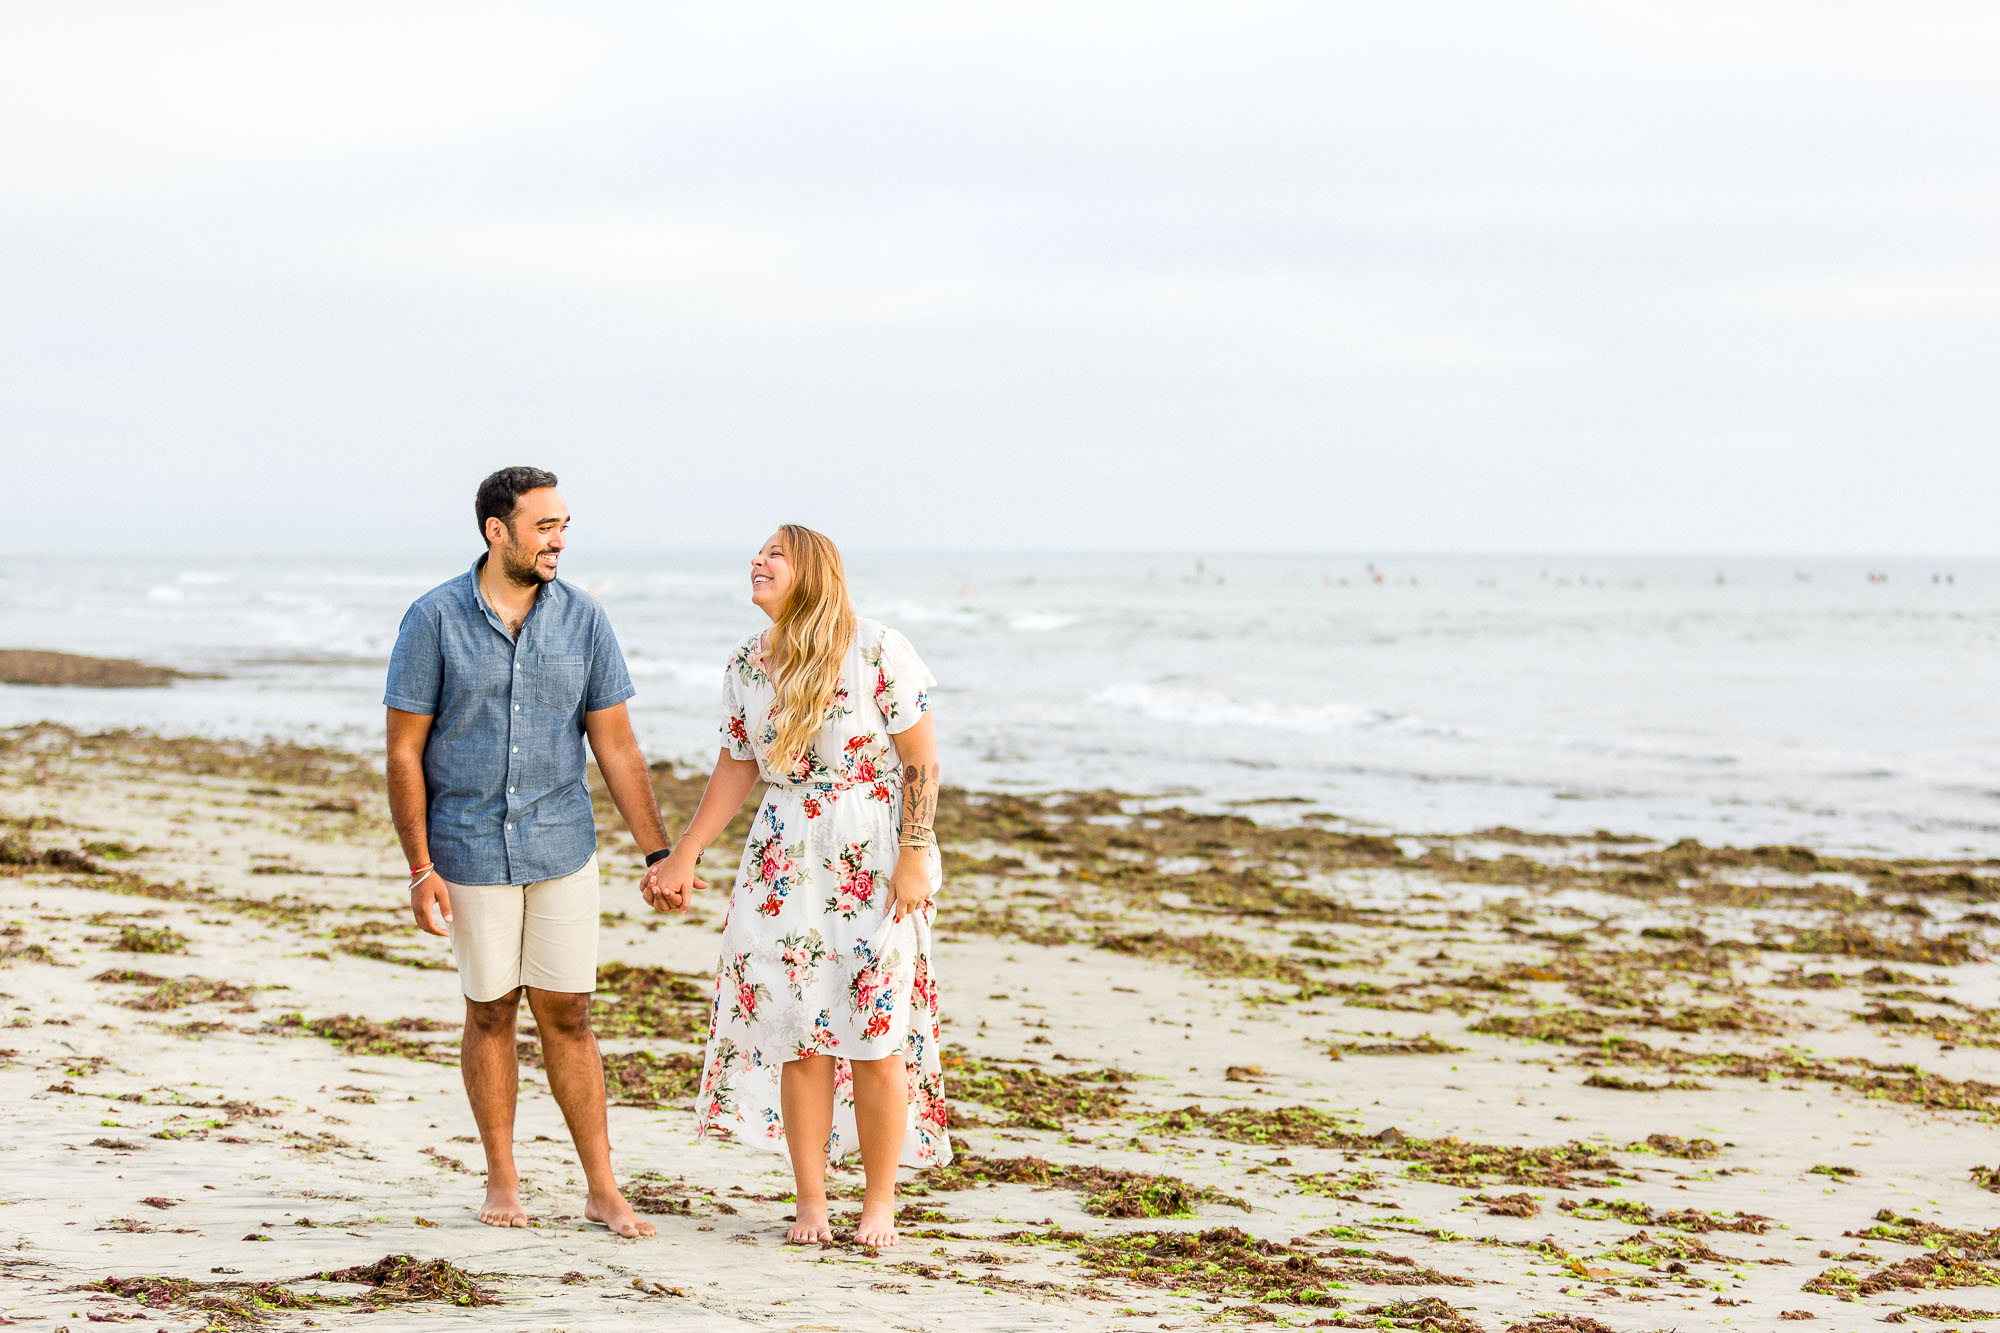 Justine_Puneet_Cardiff_Engagement_Session_125.jpg